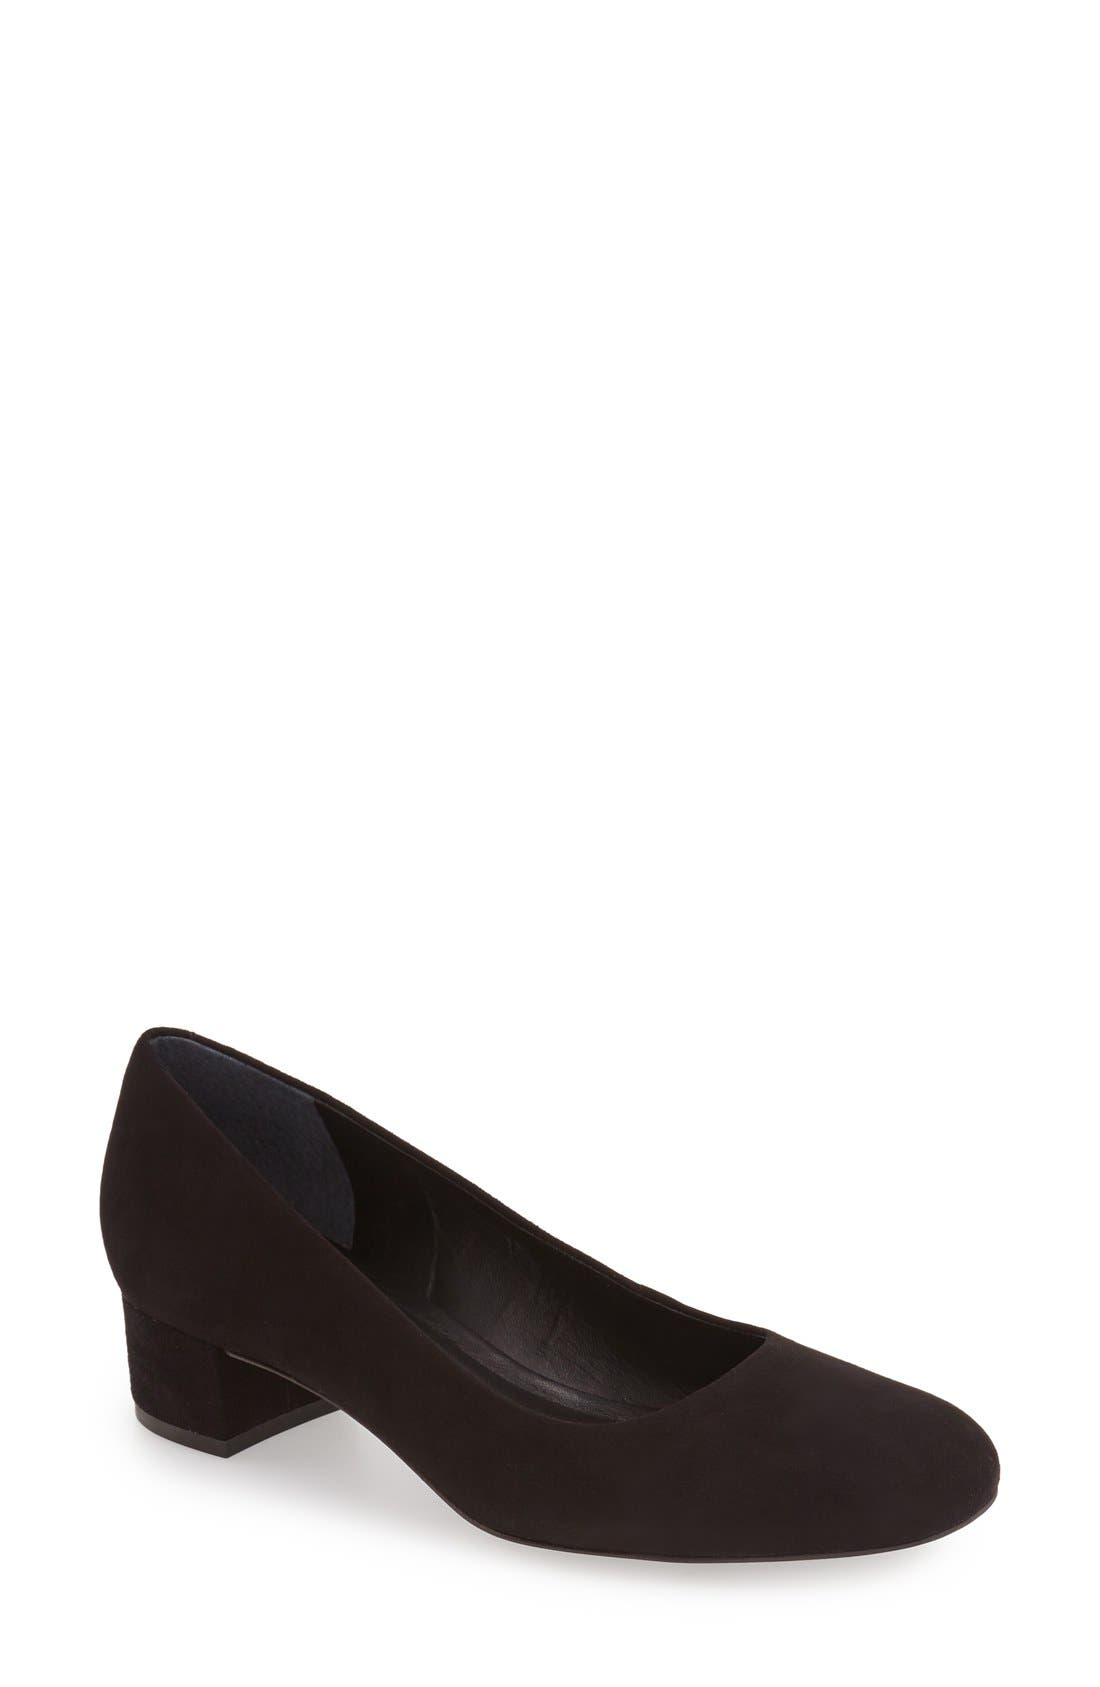 Bernardo Reggie Block Heel Pump,                         Main,                         color, 001